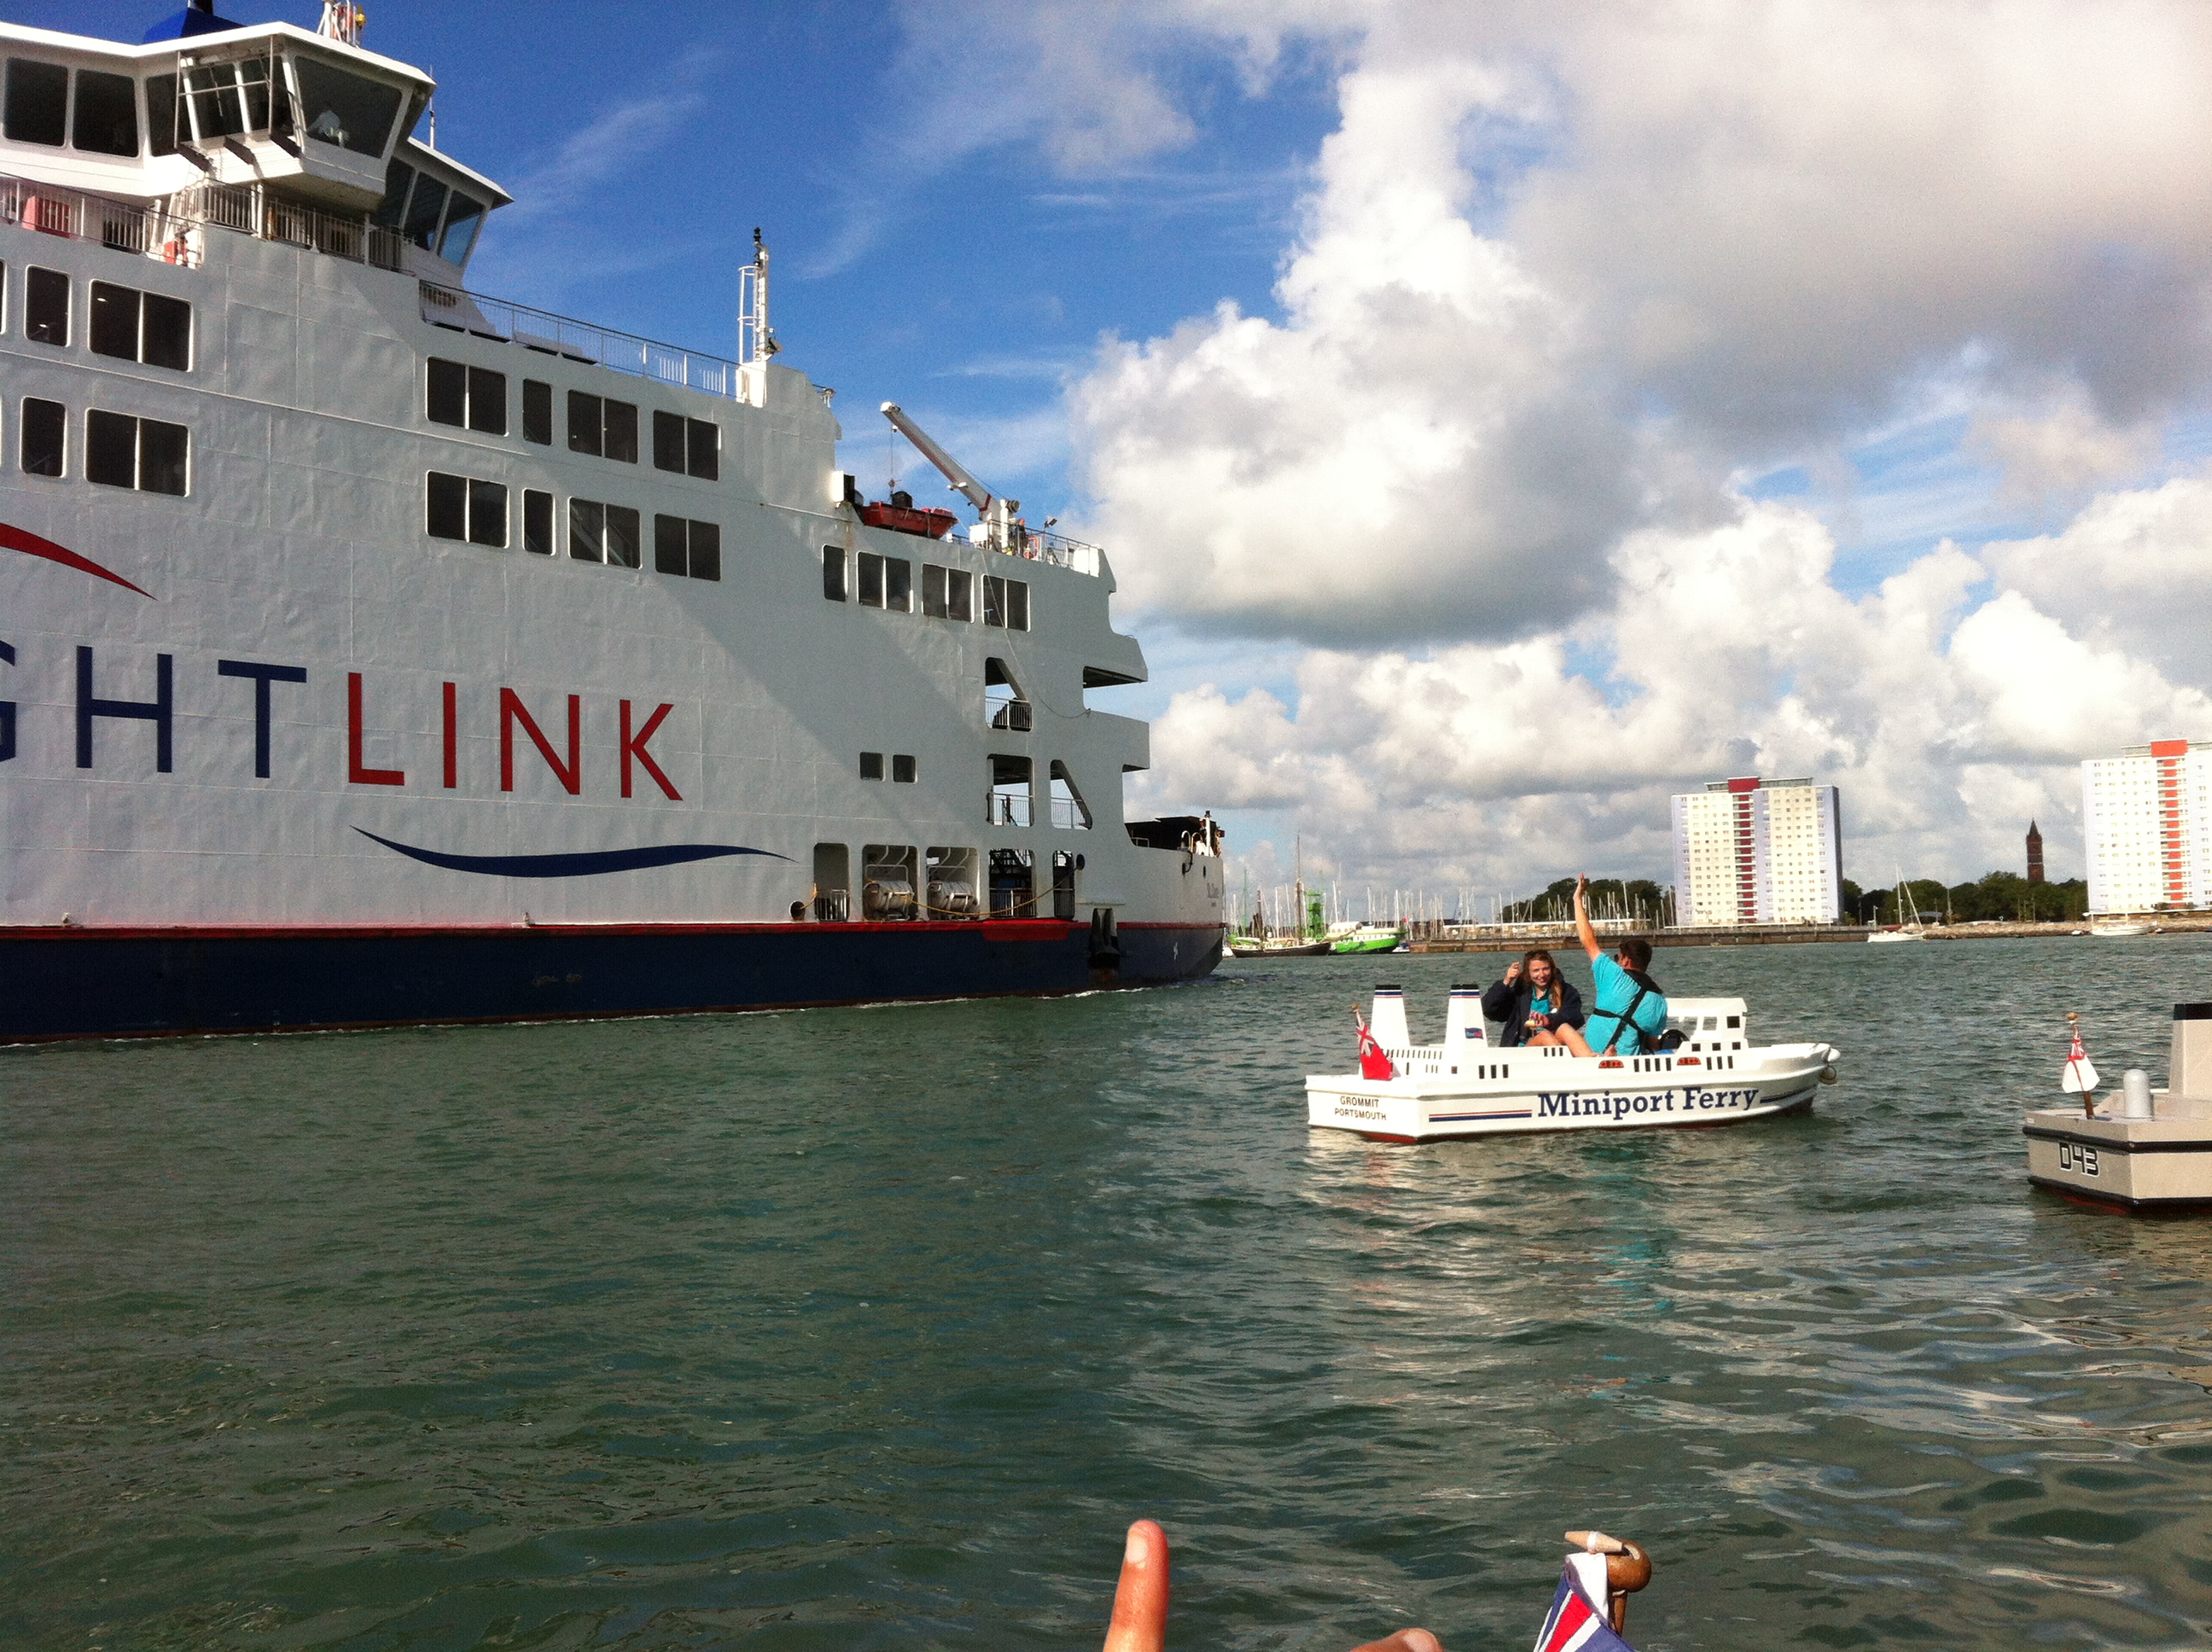 The Miniport ferry passing Whightlink Ferry!